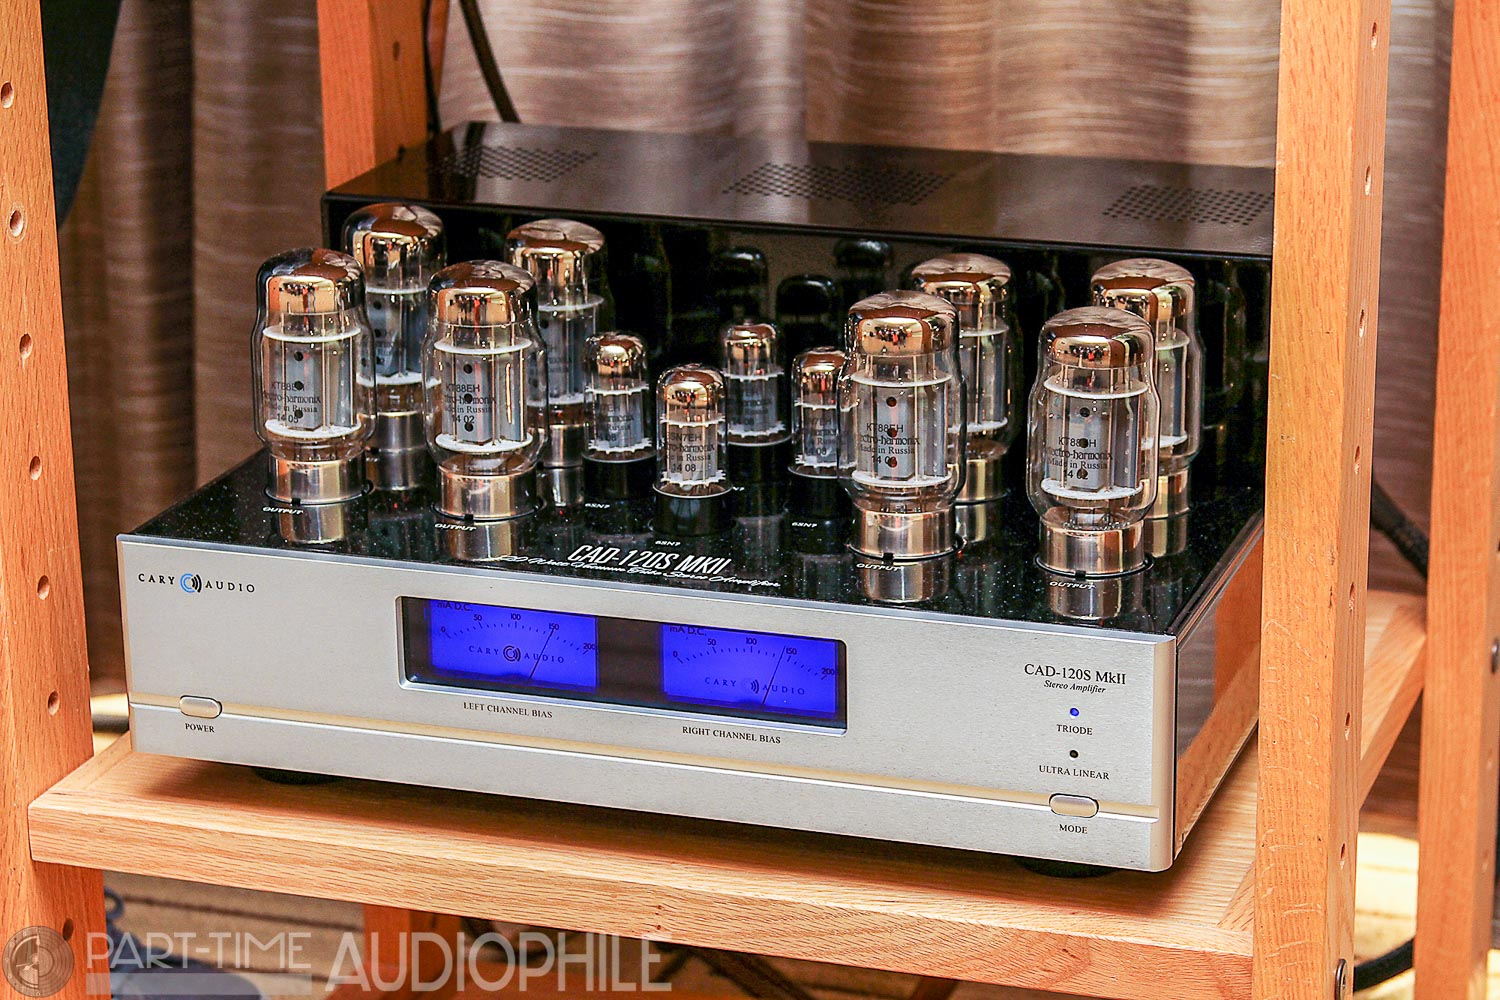 Newport 2015: Cary Audio with Tannoy